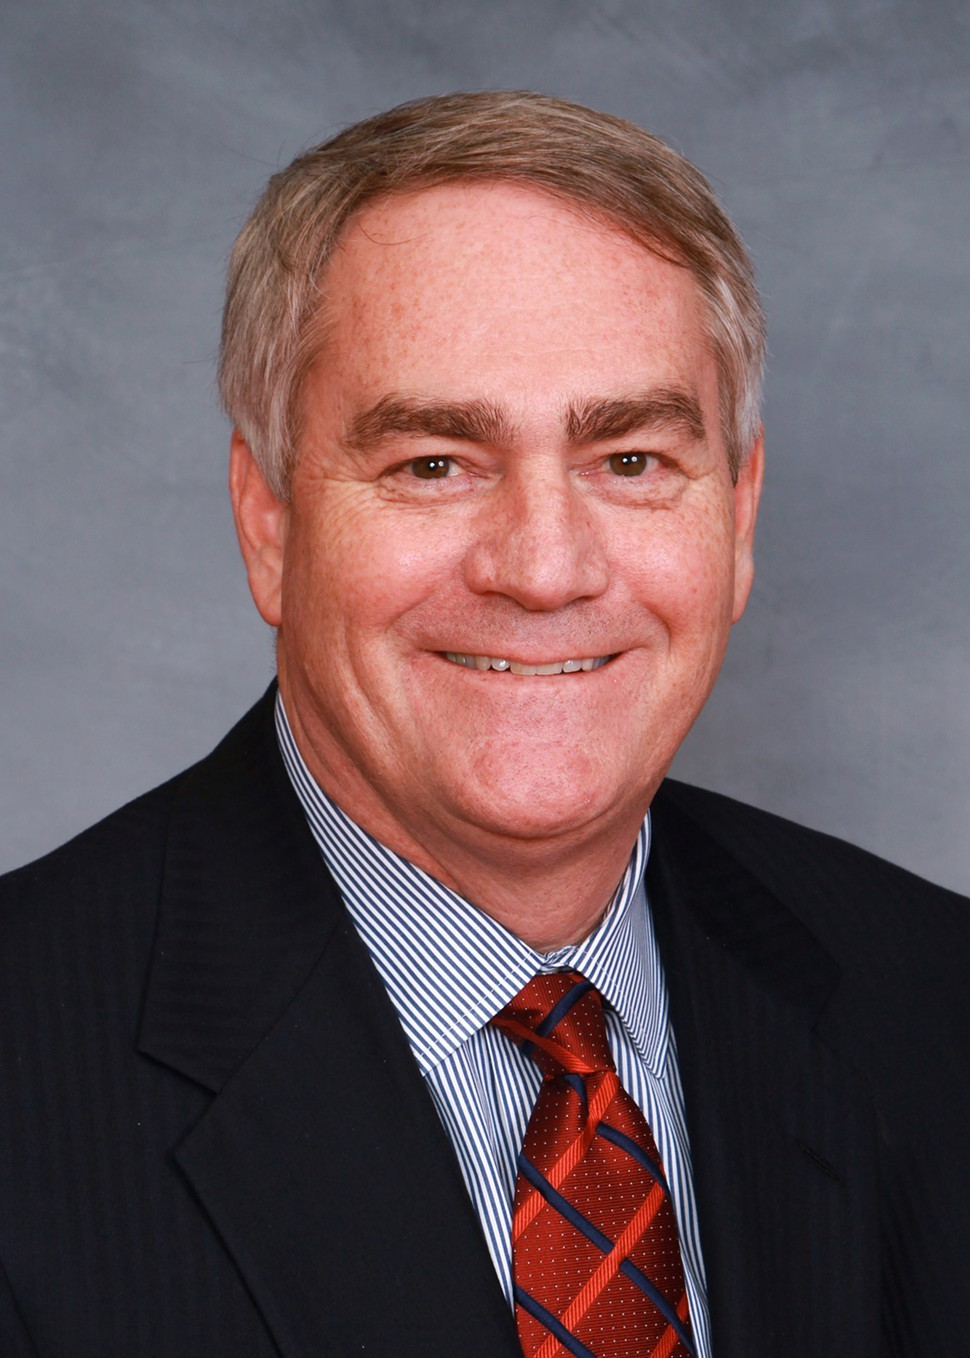 State Sen. Peter Brunstetter